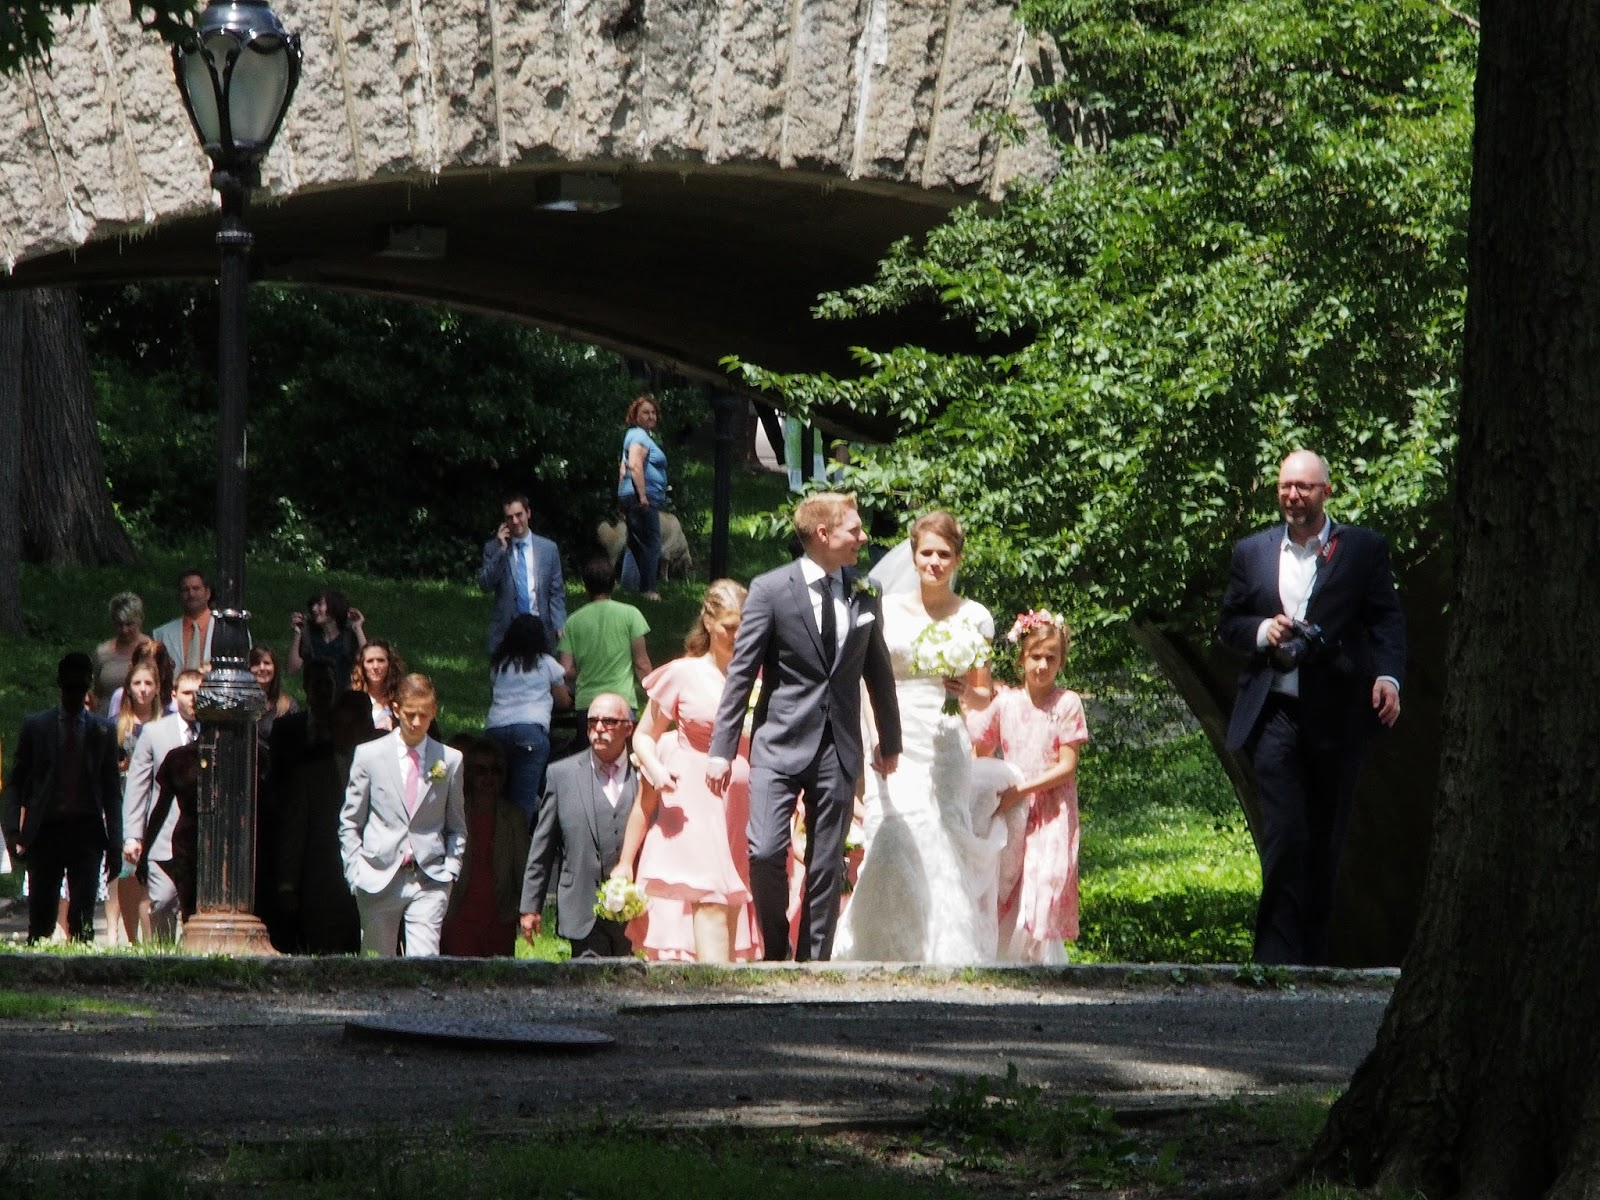 Wedding Party, #centralpark #nyc #wedding 2014